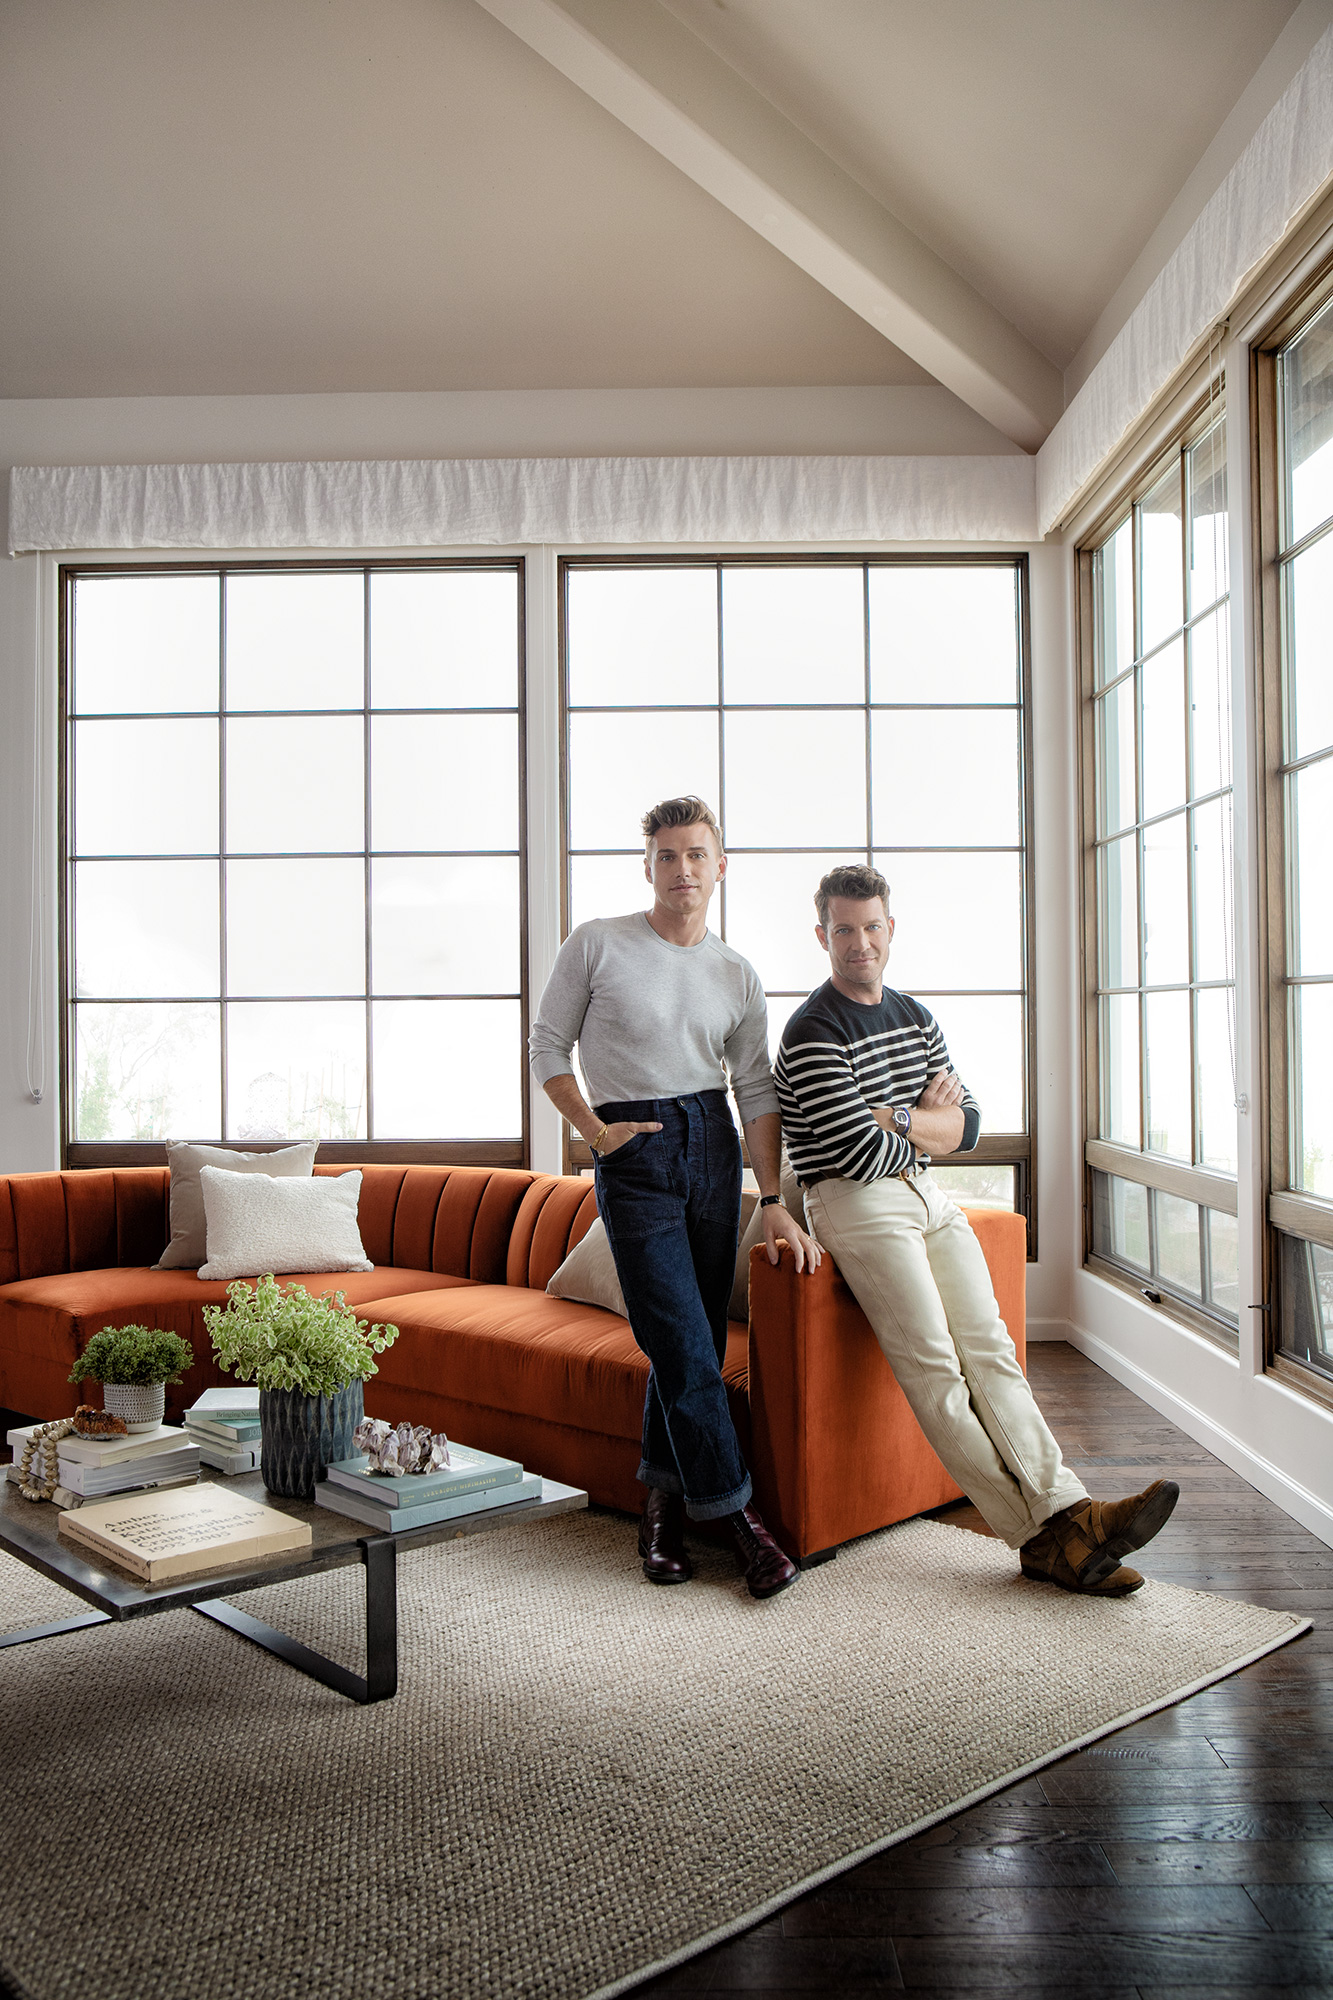 amazing simplify pedestal accent table nate berkus jeremiah brent living spaces and debut furniture line inspired their own home set three glass coffee tables nesting with drawer